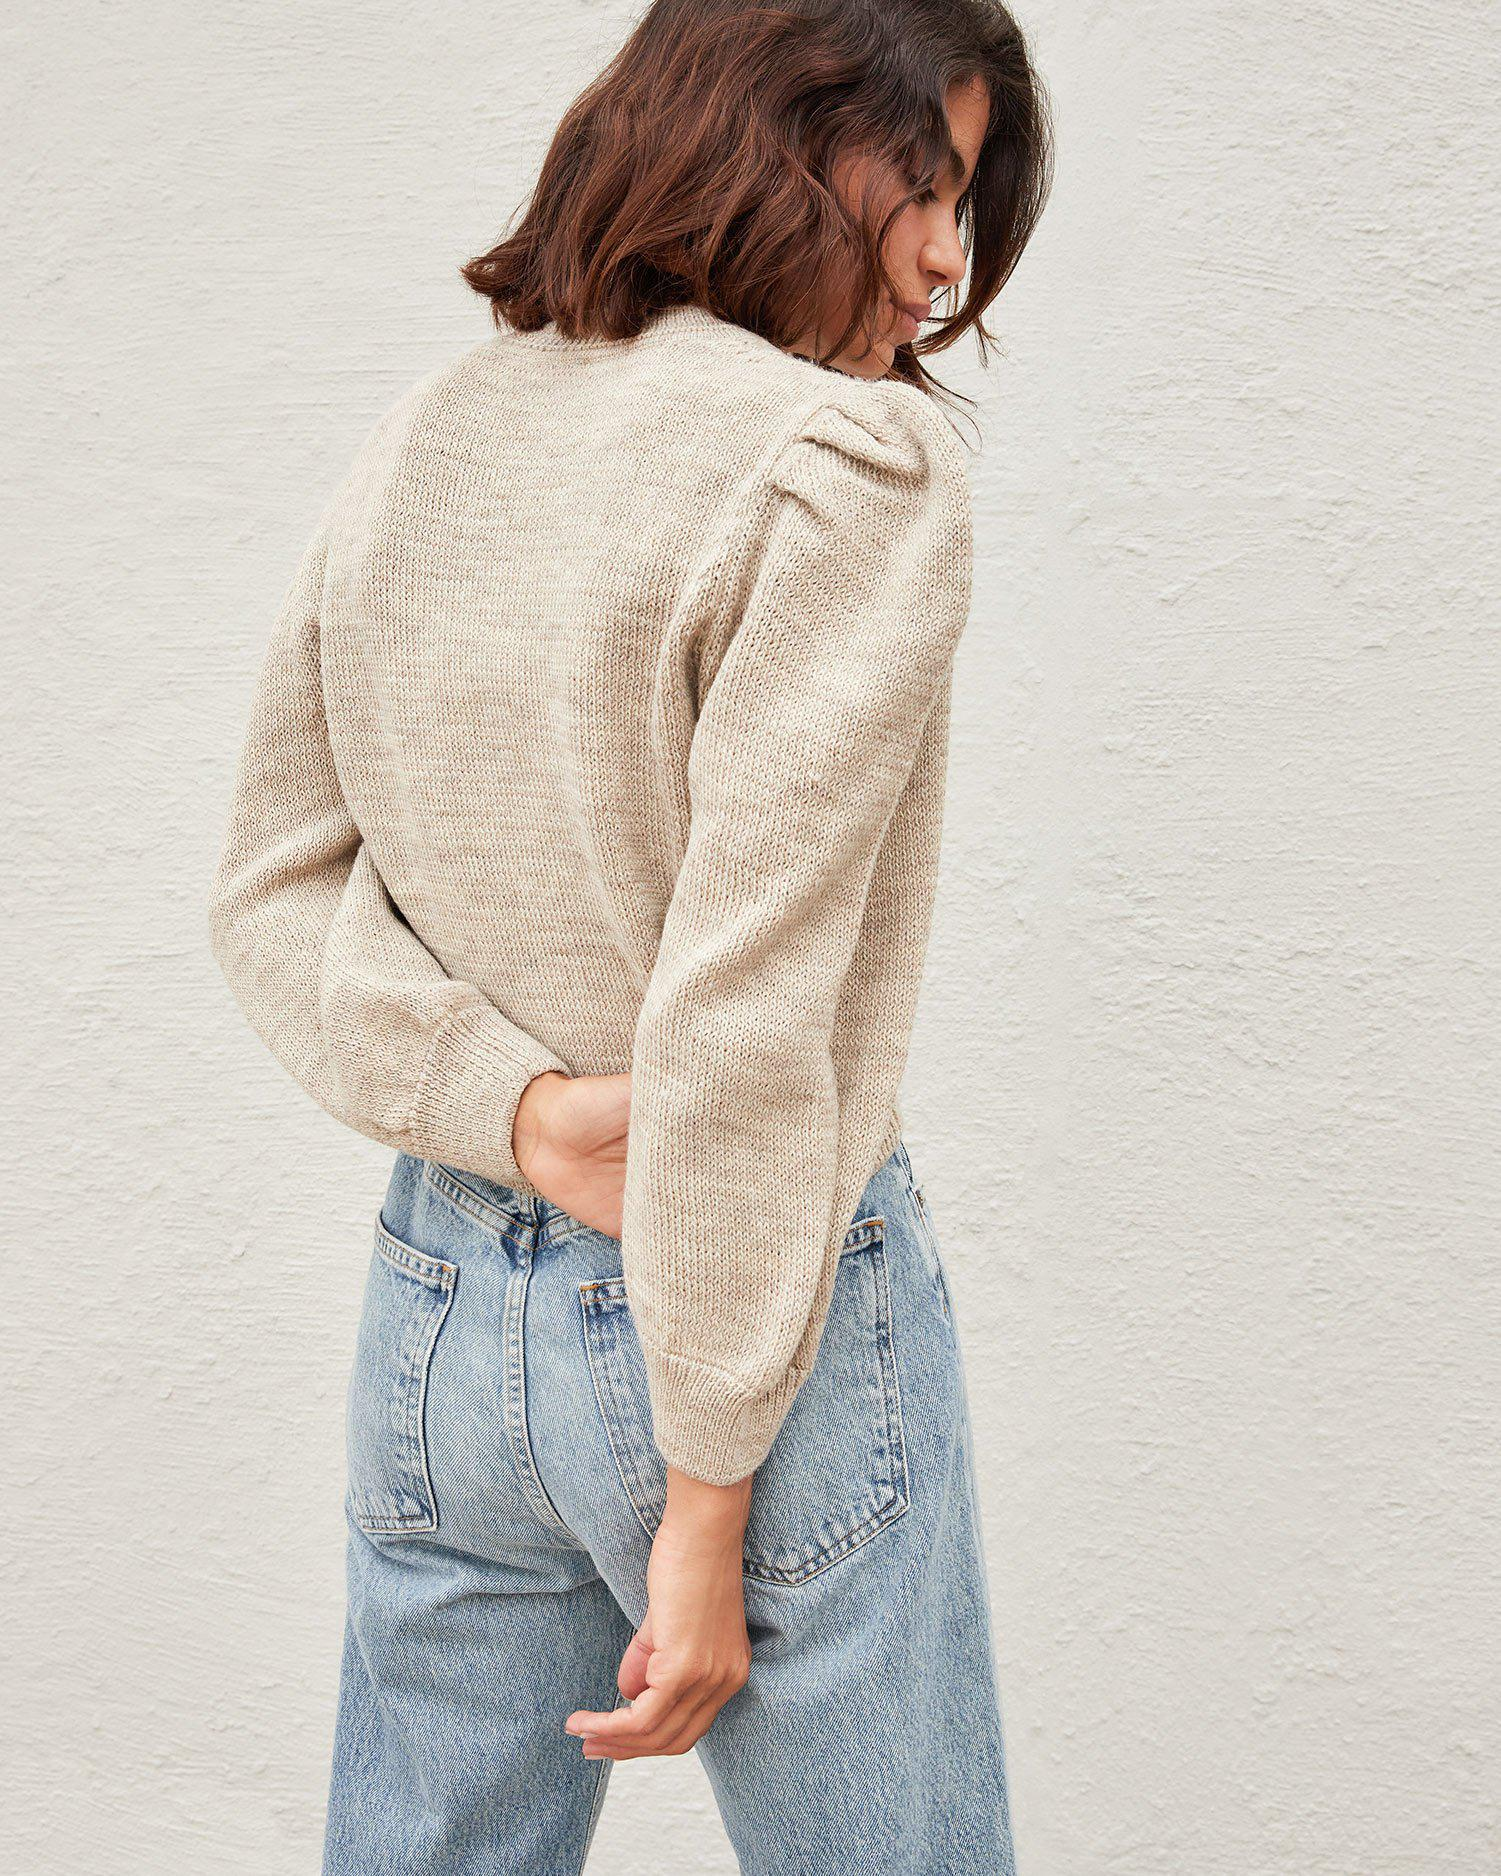 Knits for Good Oatmeal Sweater 2